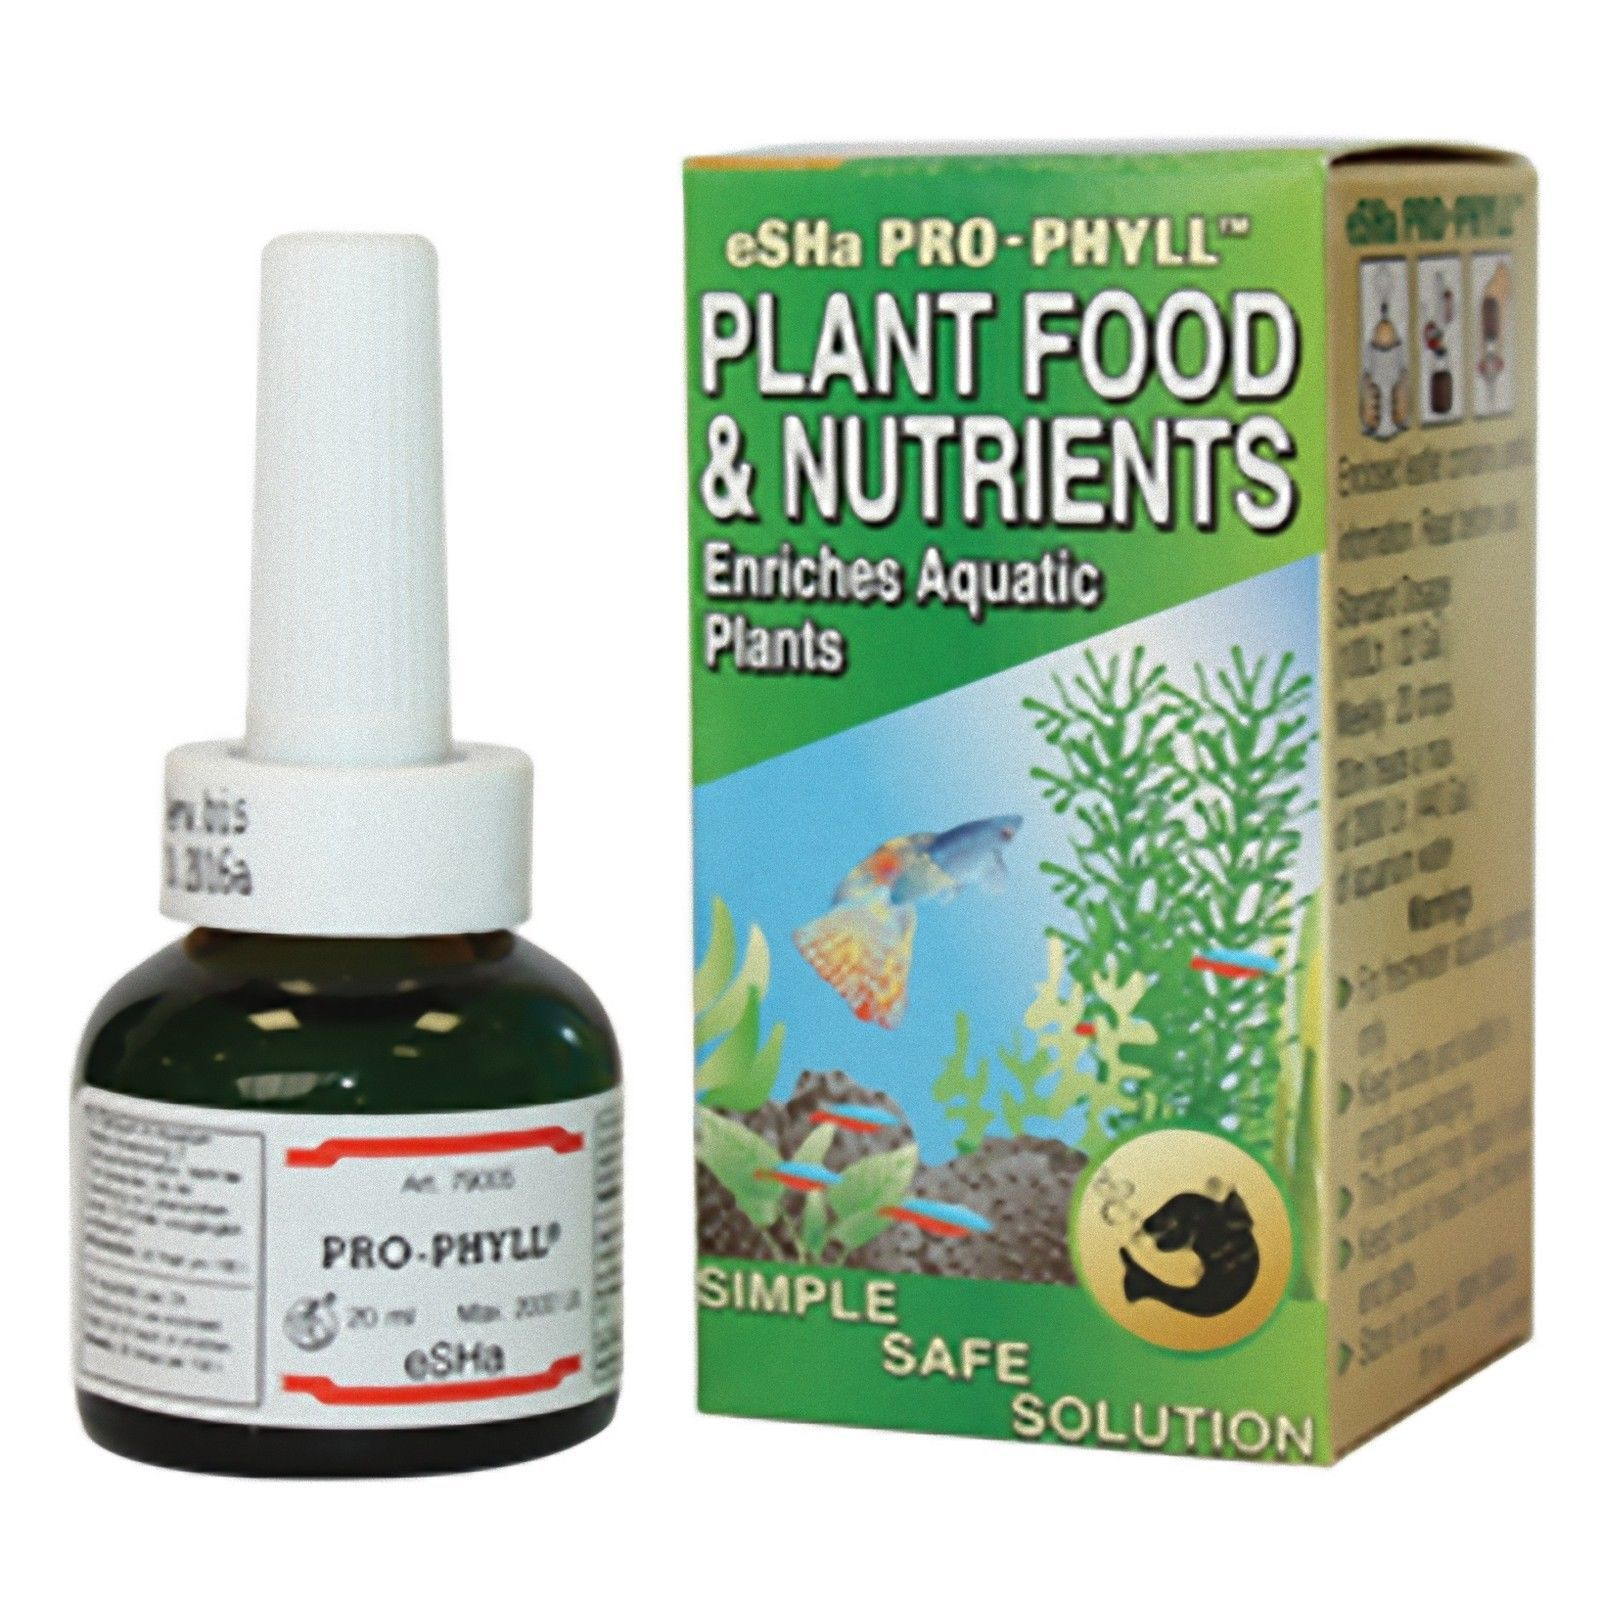 Esha Pro Phyll 20ml Plant Food Nutrients Enriches Live Aquatic Plants Aquarium